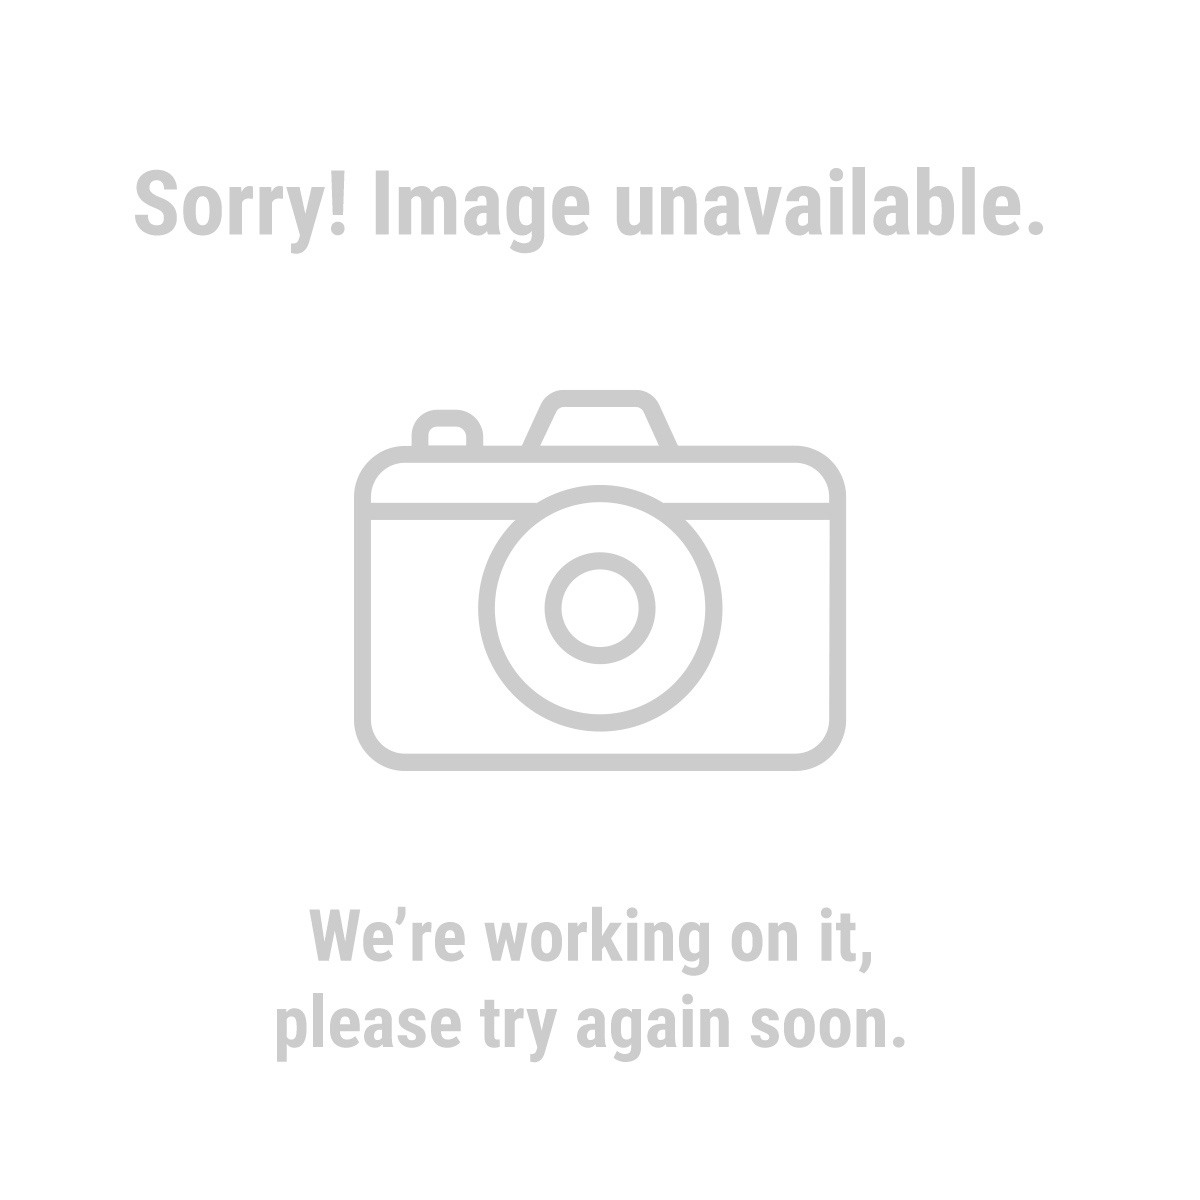 Warrior® 61891 10 in. Continuous Rim Wet Cut Diamond Blade for Masonry